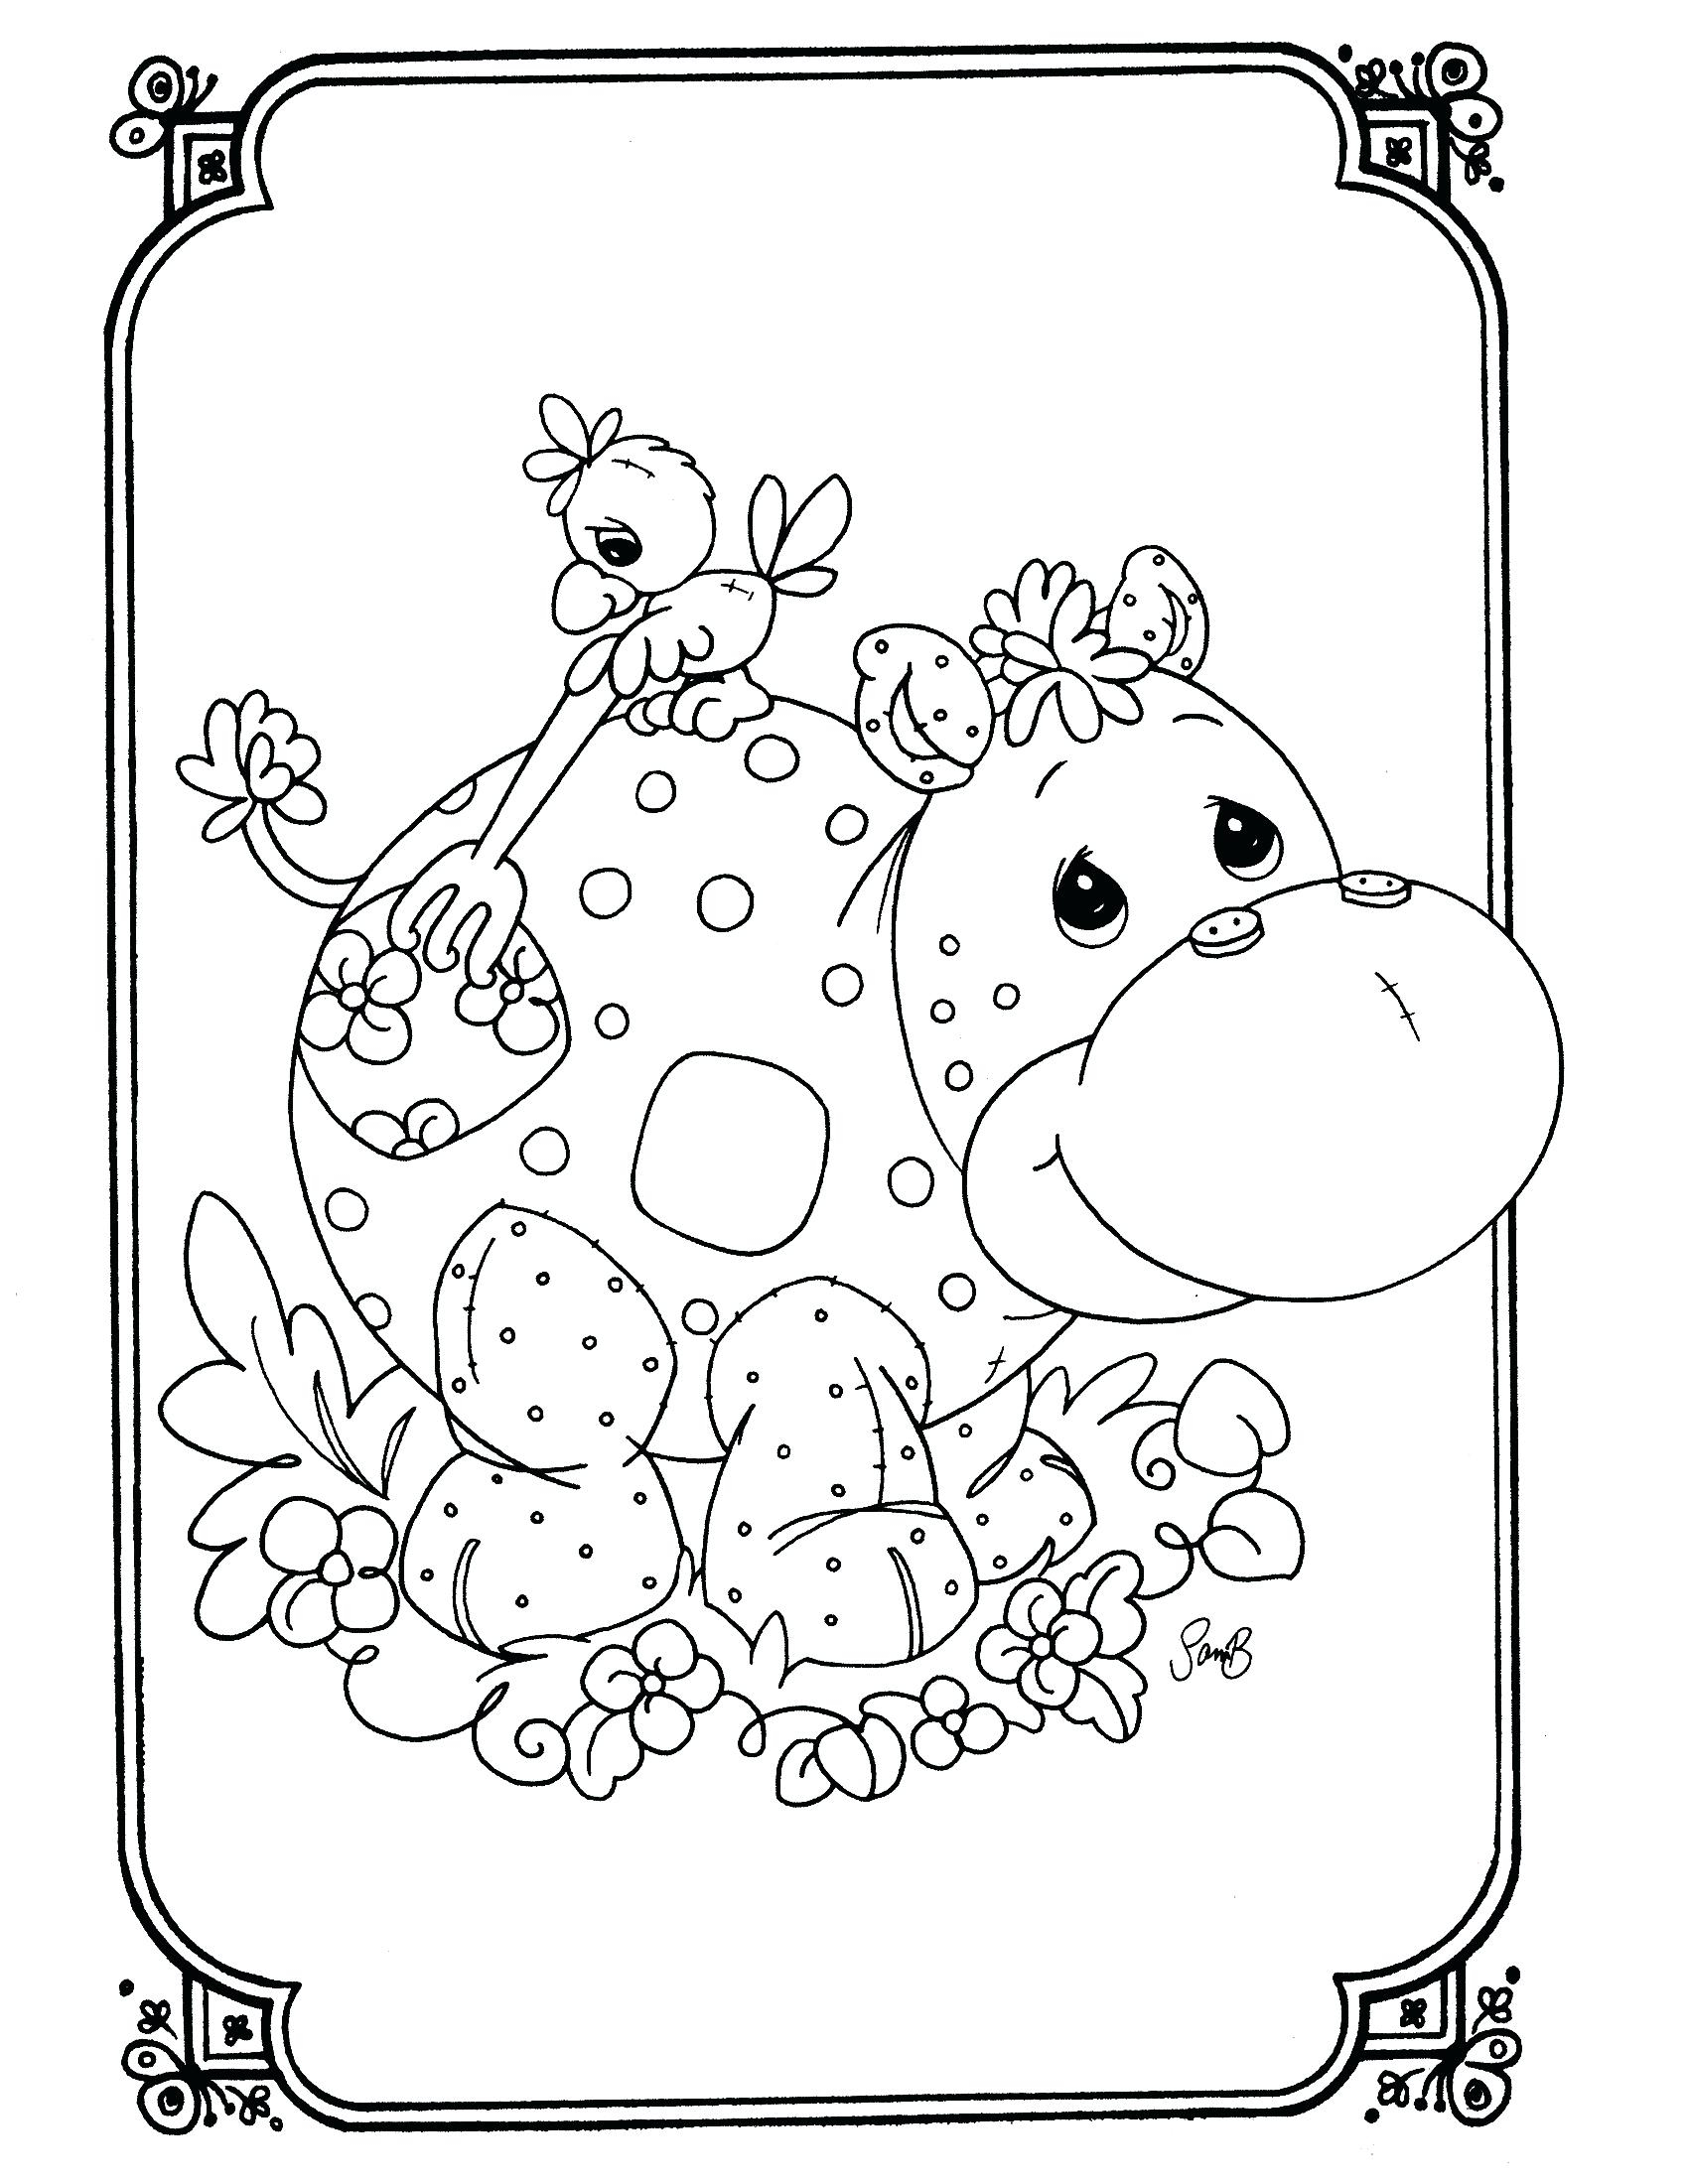 Precious Moments Baby Coloring Pages Images Of Precious Moments Animals Coloring Pages Sabadaphnecottage